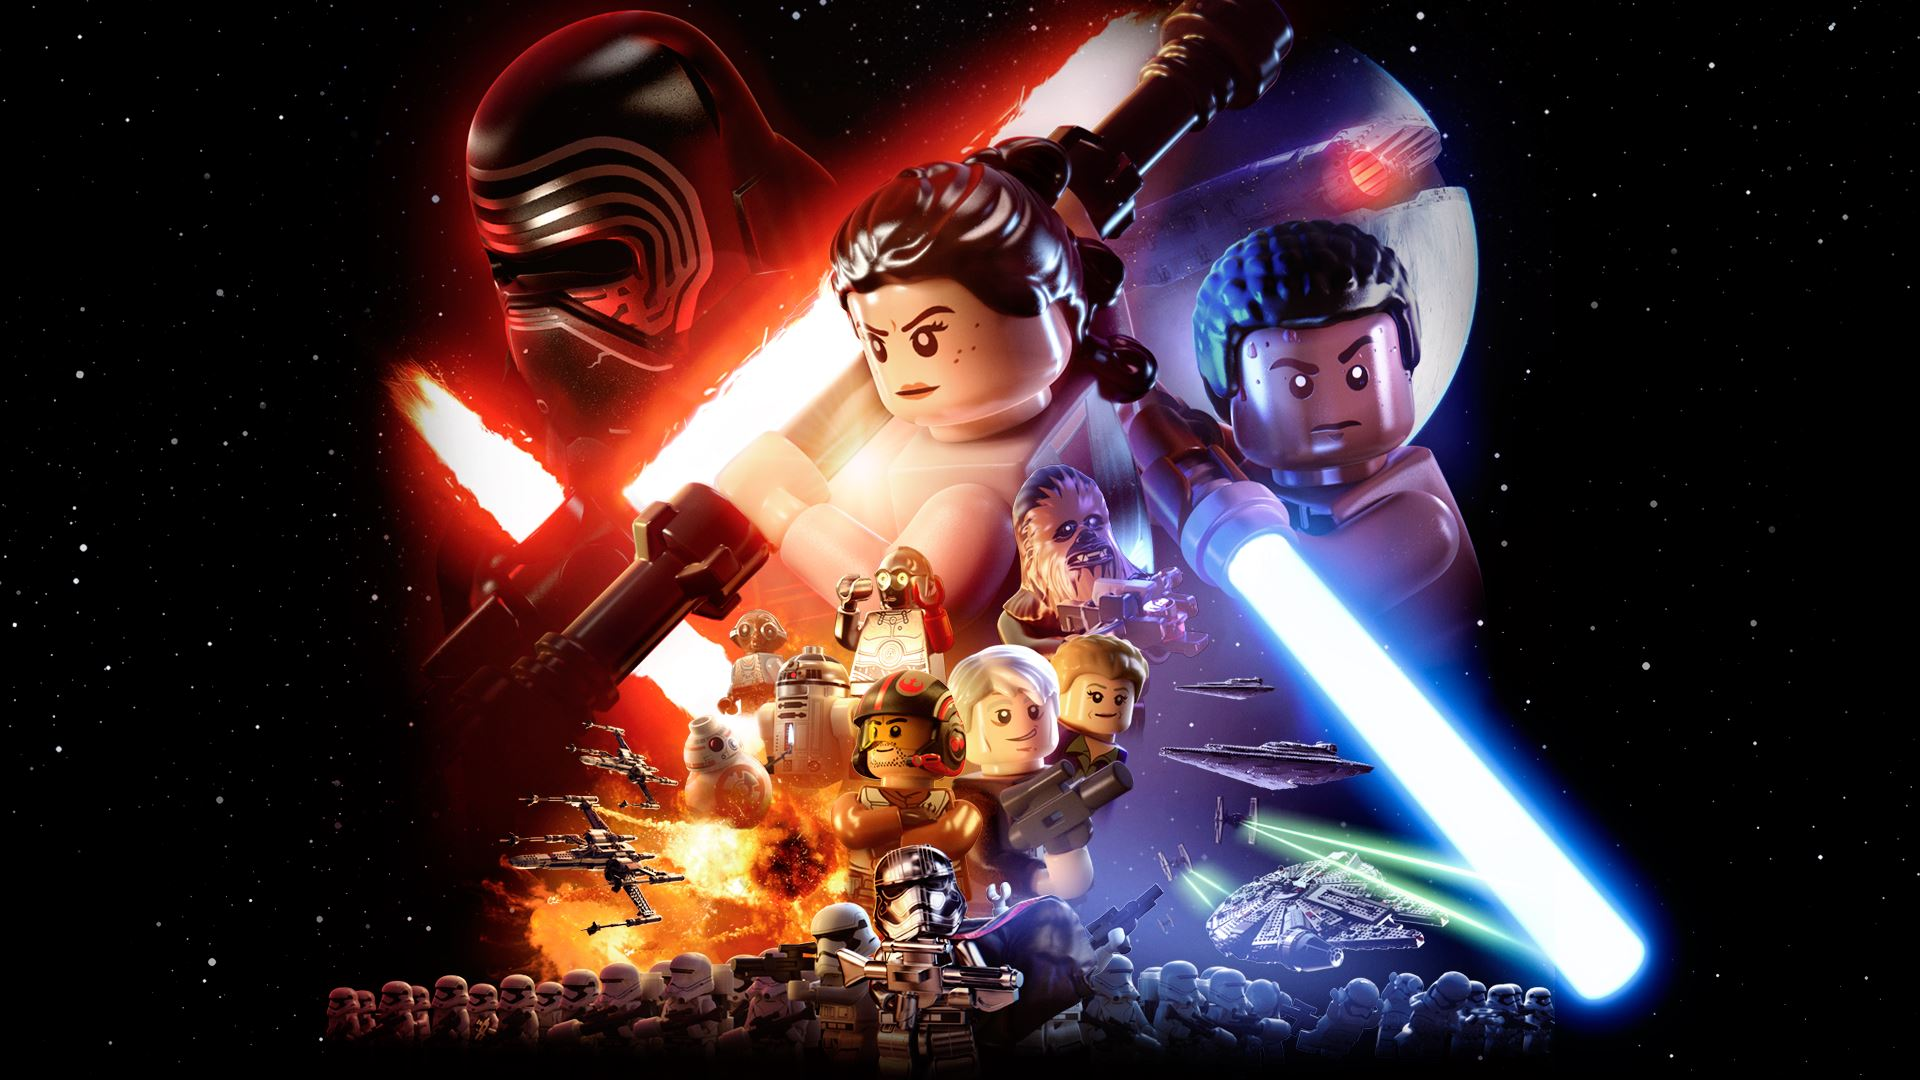 1cc57fa8baf5 Análise: LEGO Star Wars: The Force Awakens - WASD